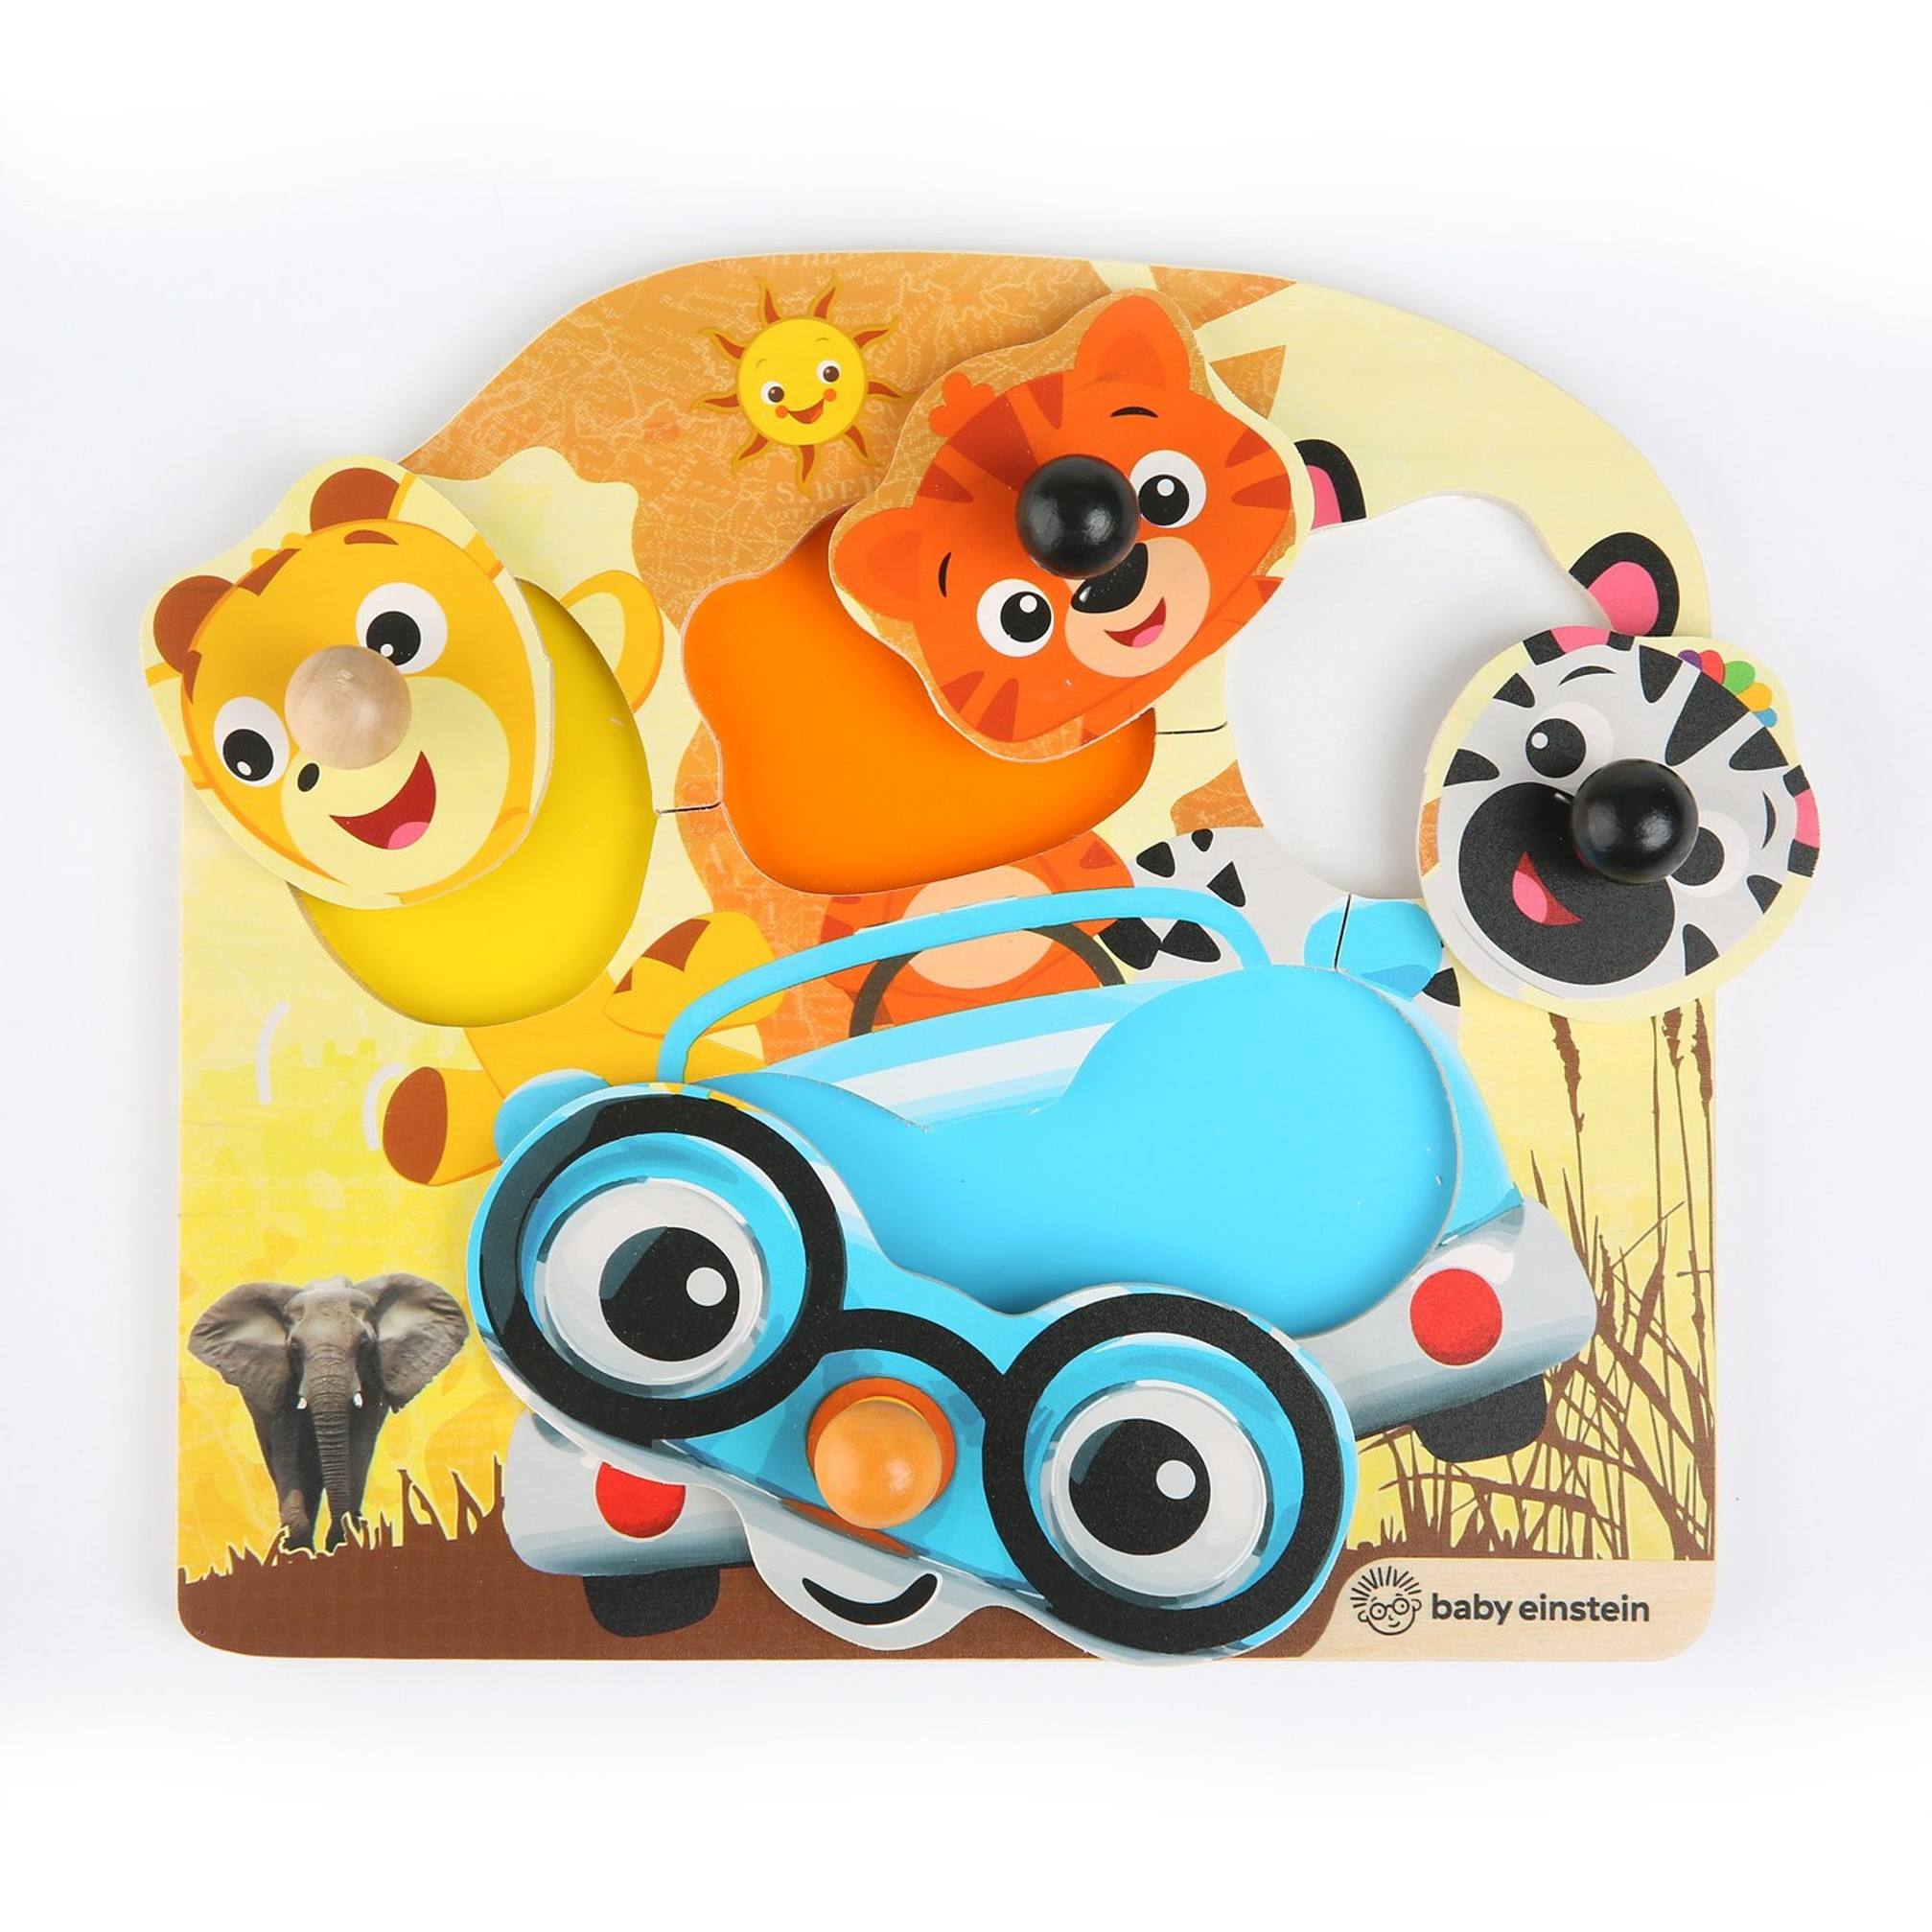 HAPE Hračka dřevěná puzzle Friendy Safari Faces 12m